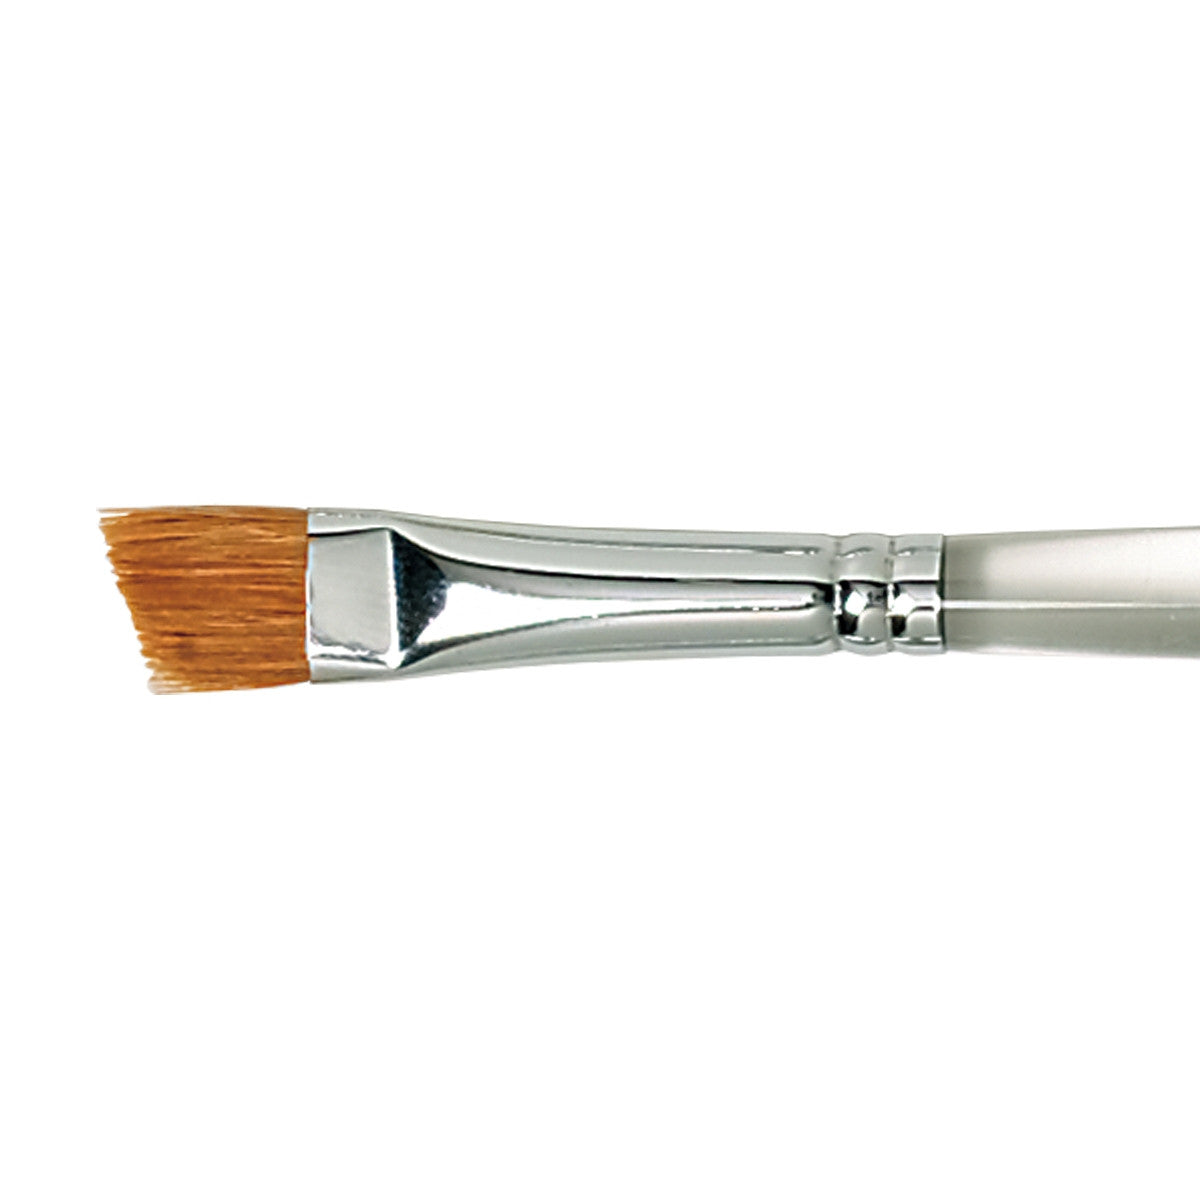 Duncan BR603 1/4 inch Angular Shader Brush